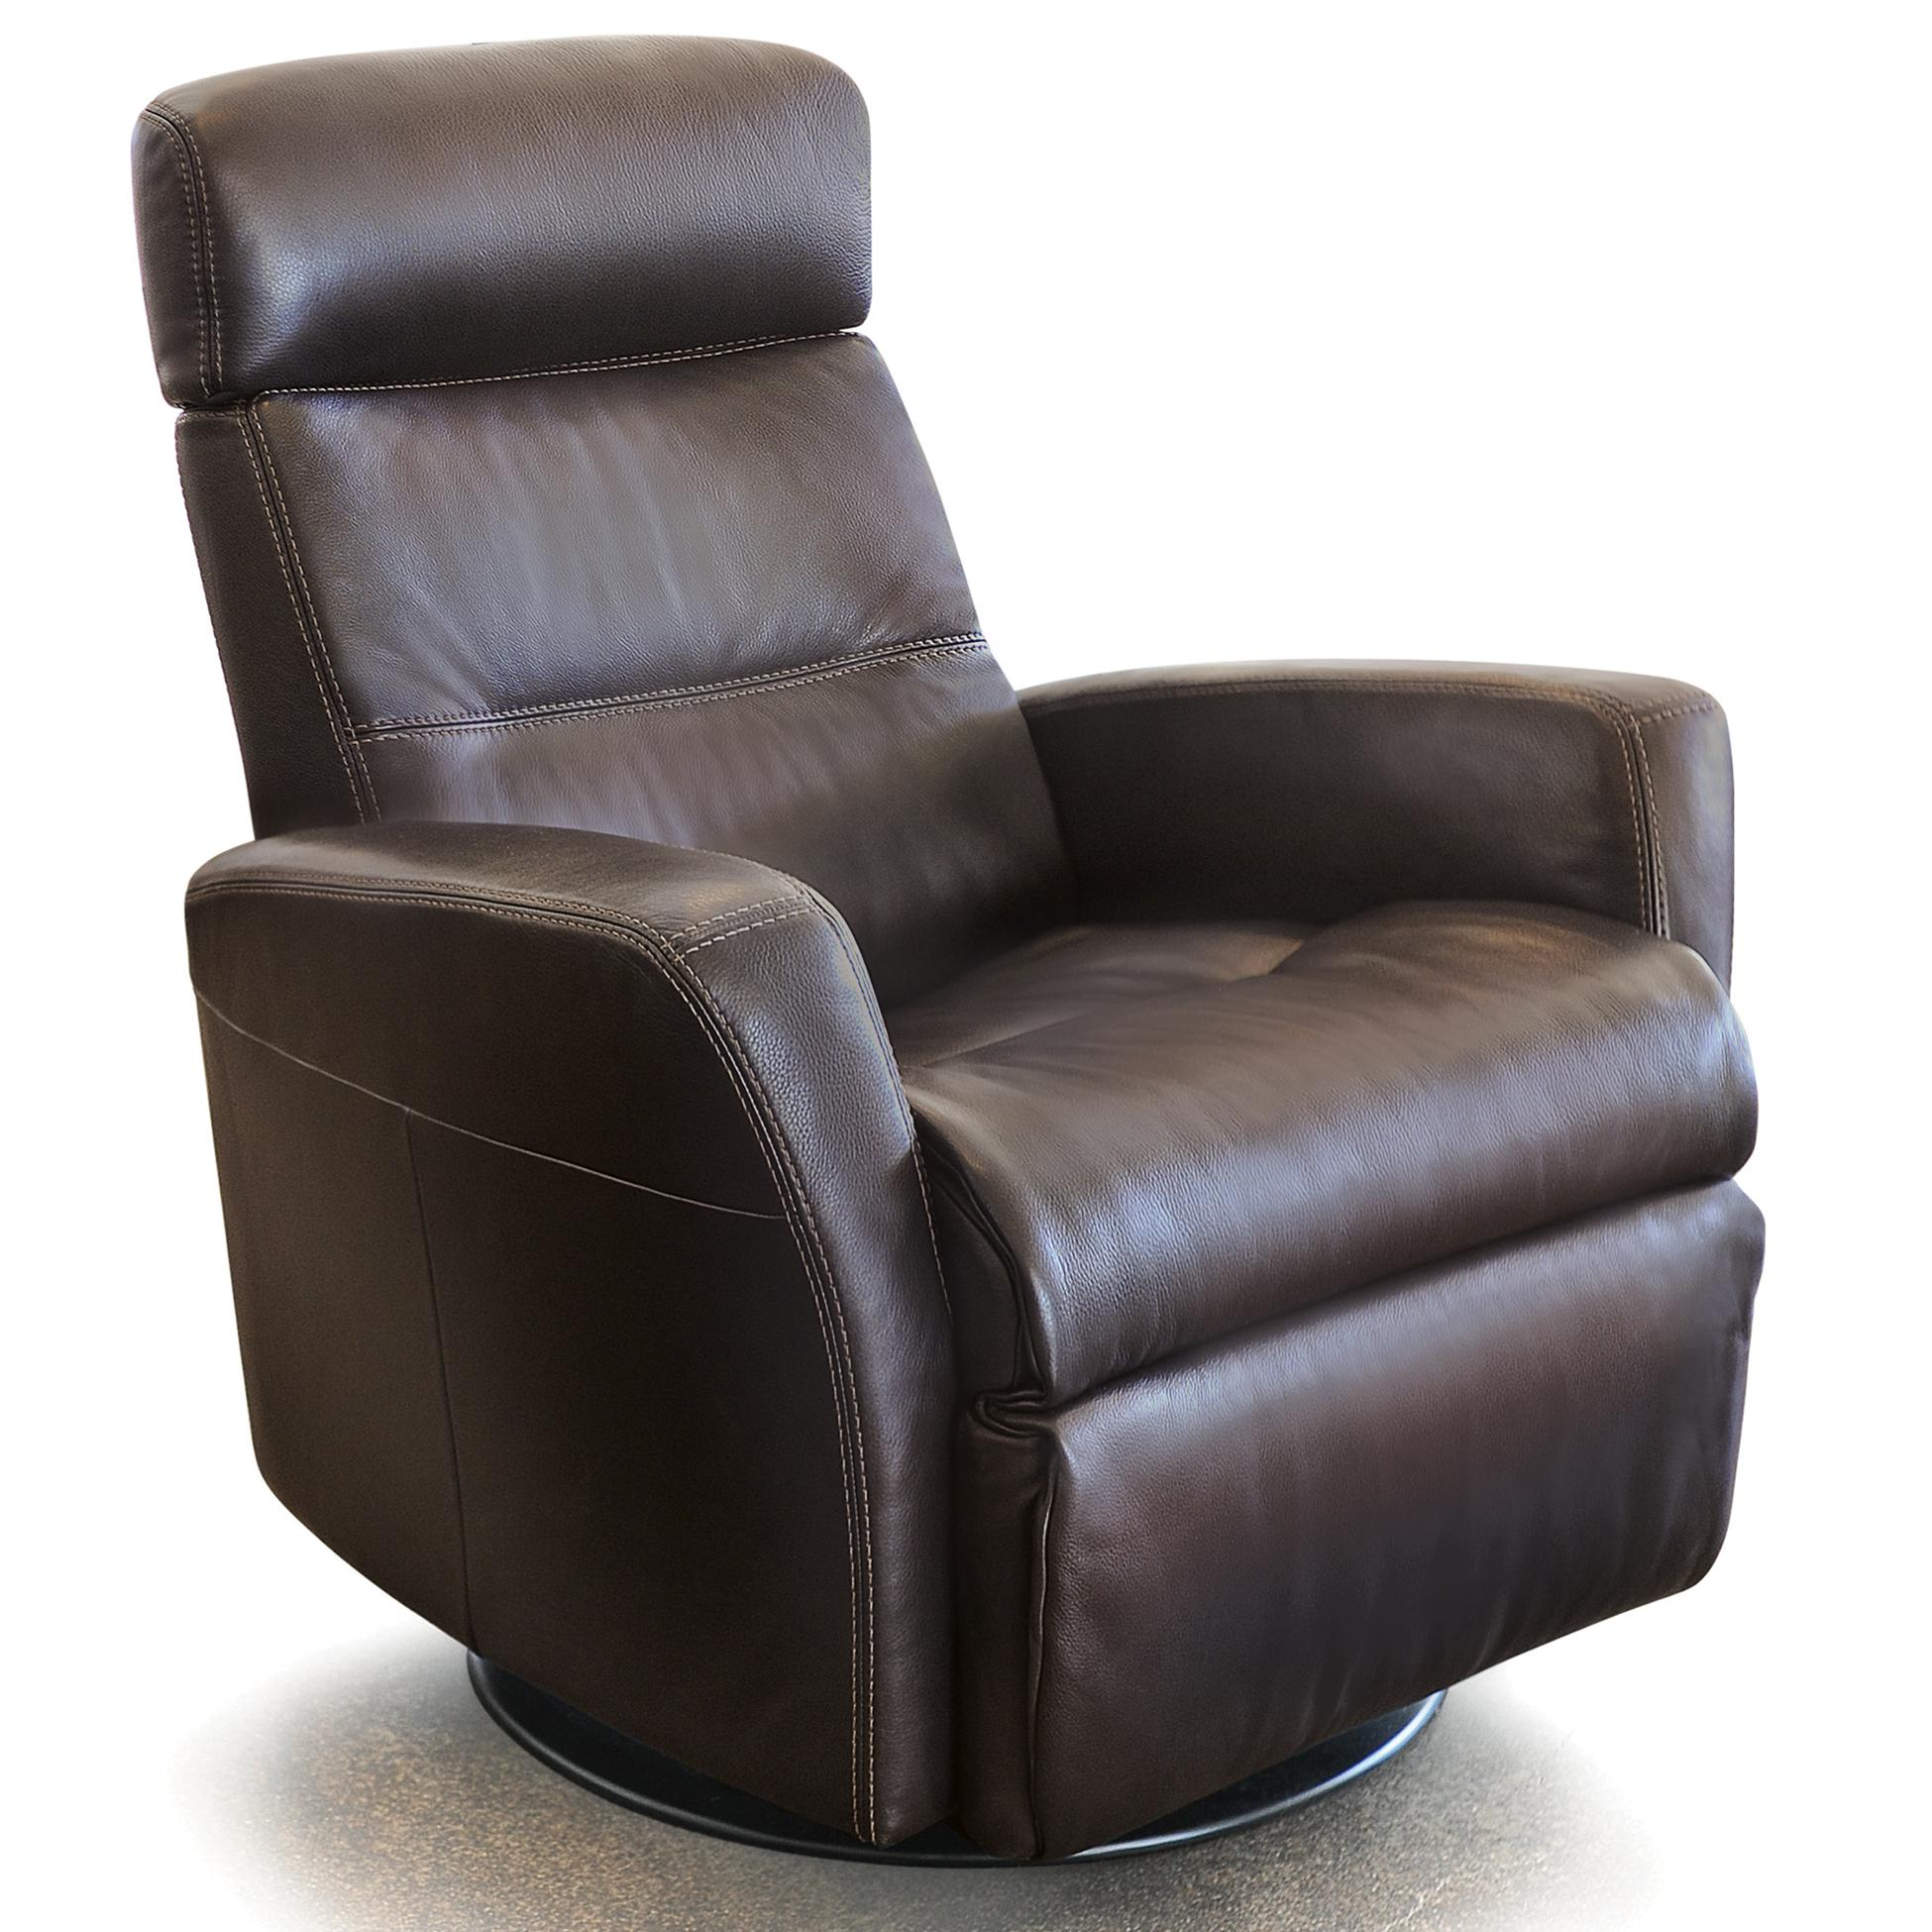 IMG Norway Recliners Modern Divani Recliner Relaxer with